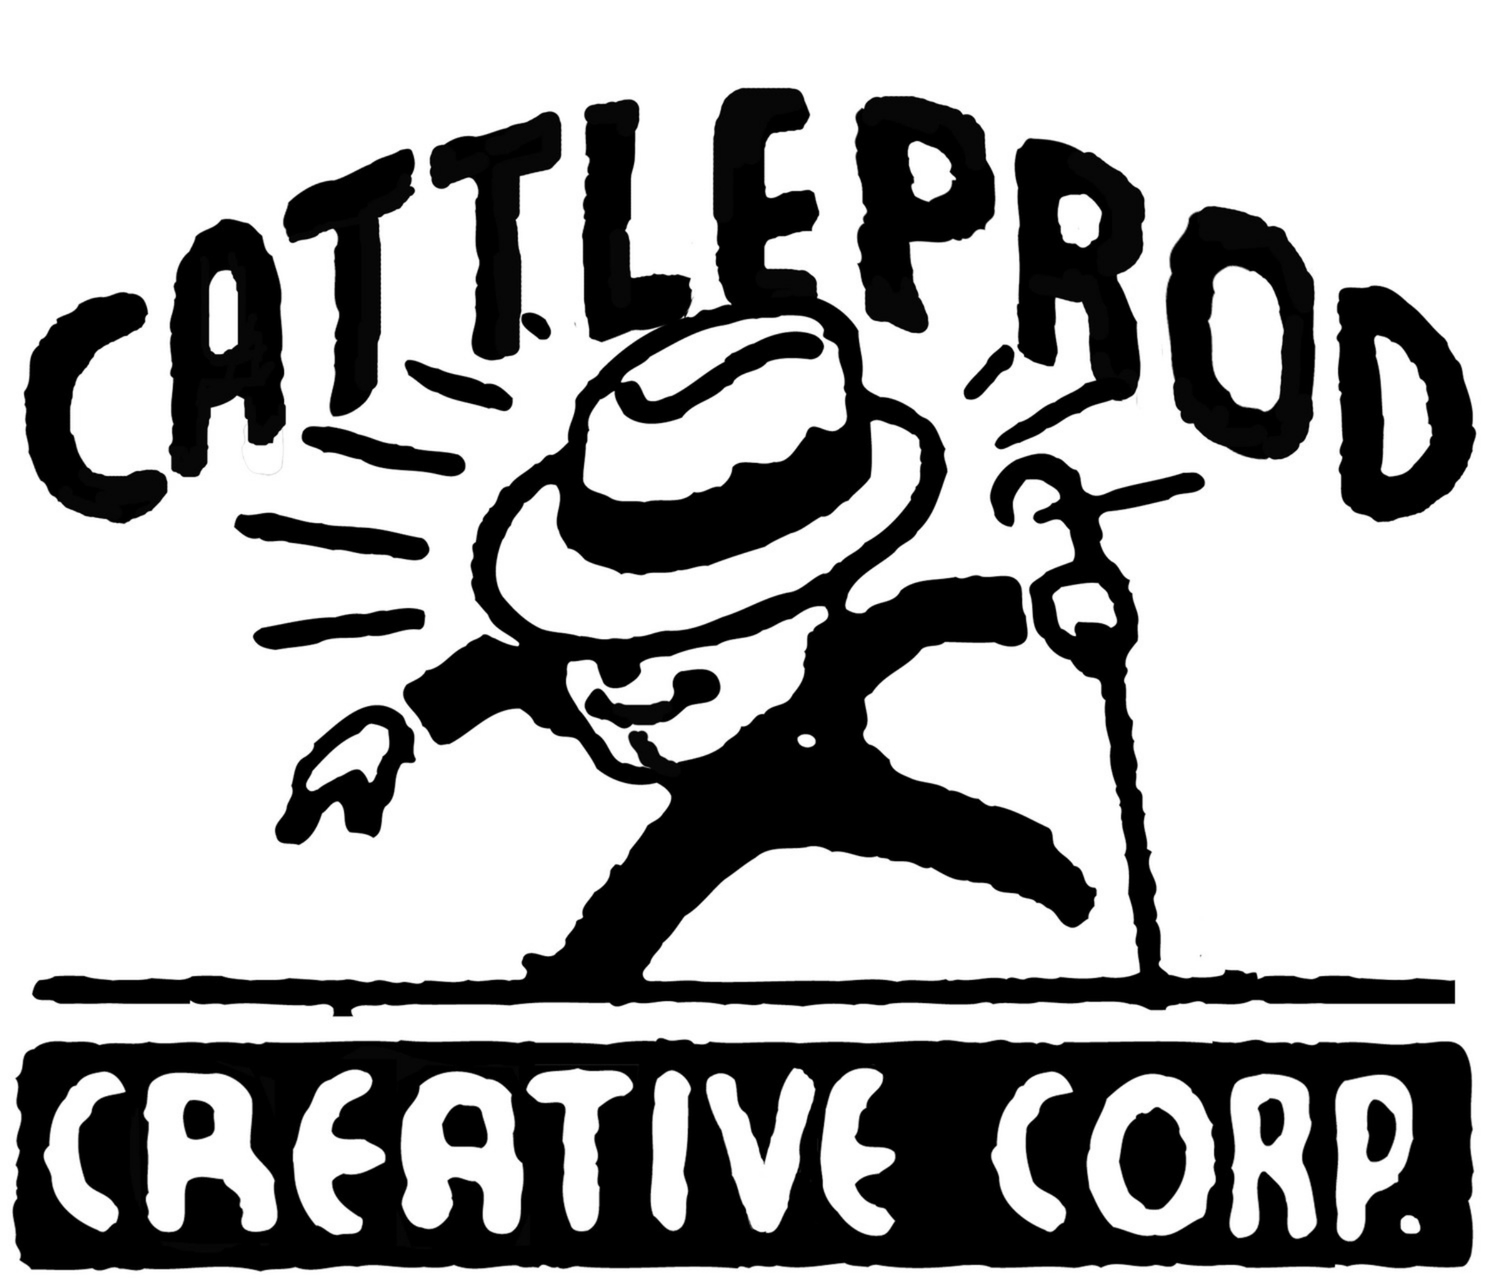 Cattleprod Creative